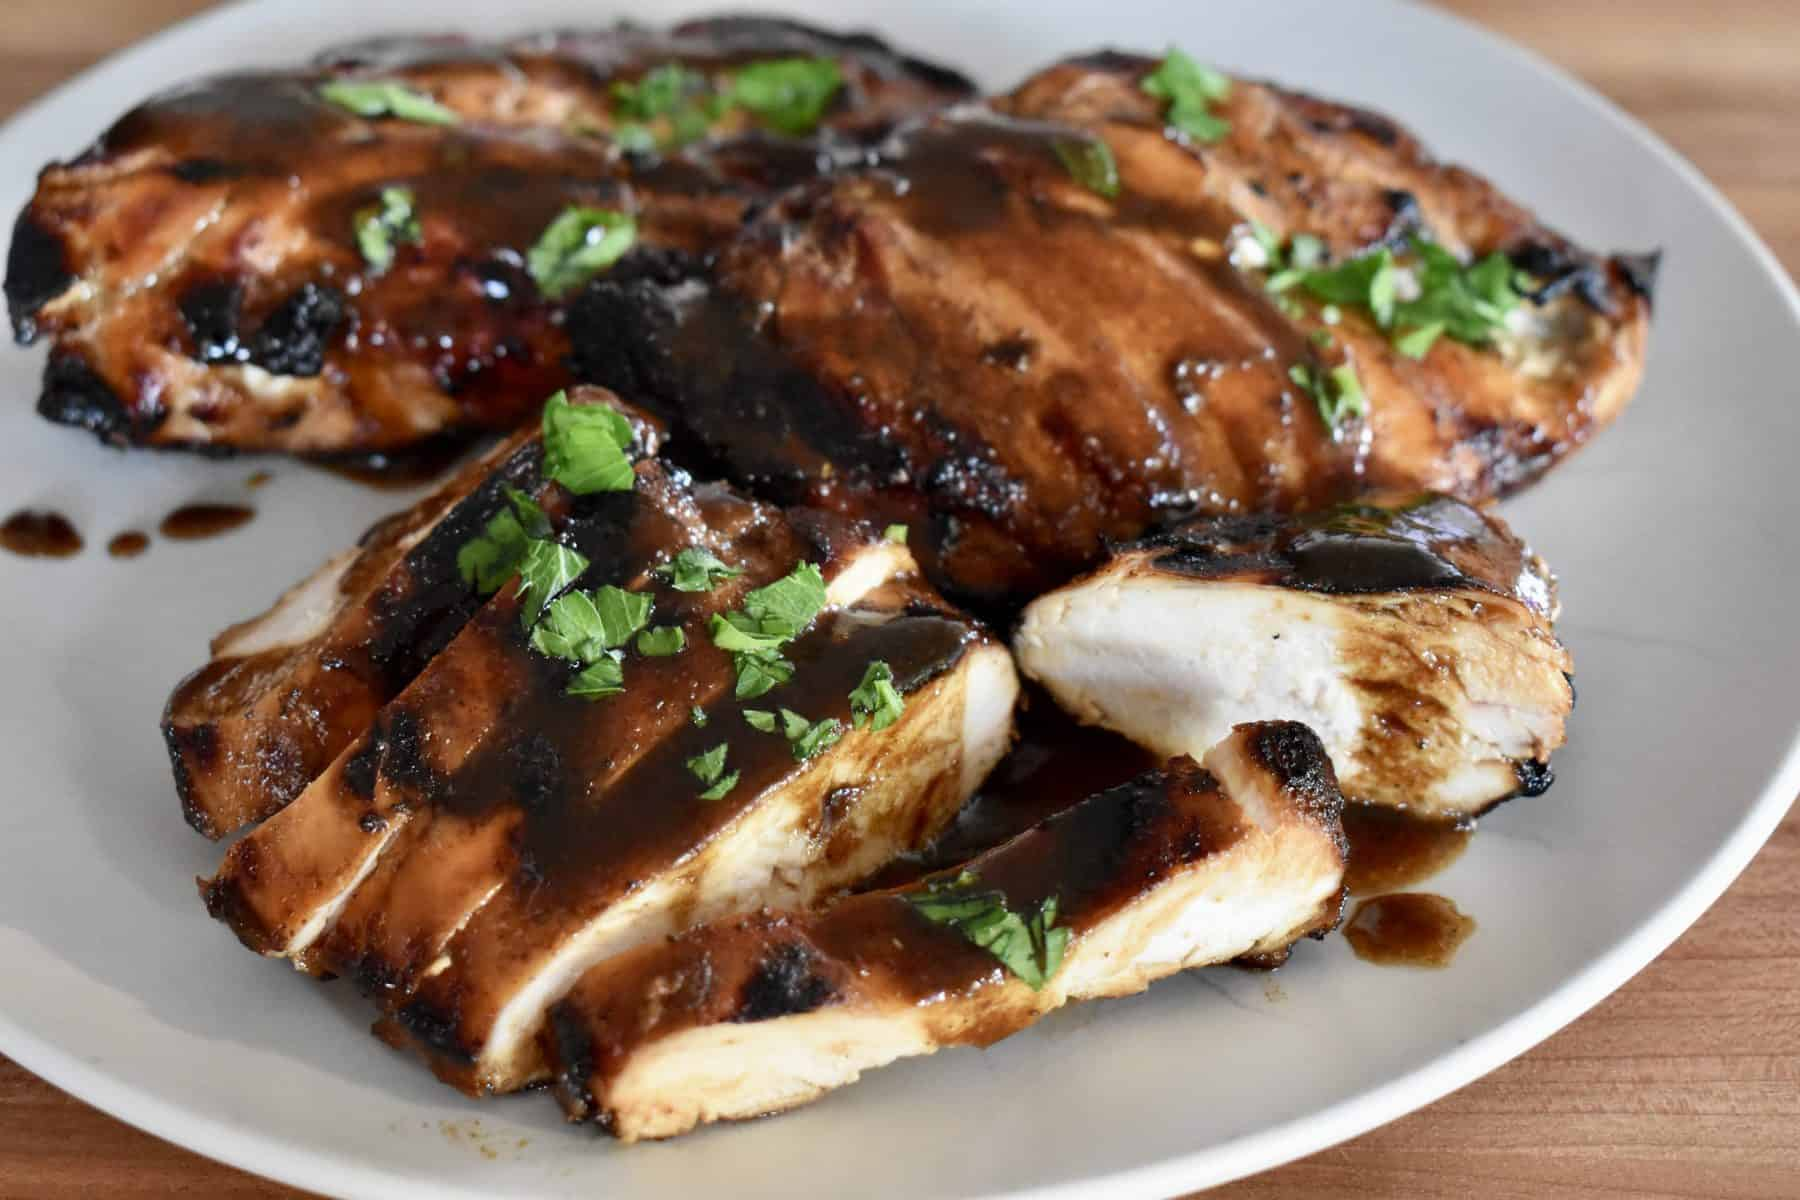 Grilled Marinated Chicken with Balsamic sauce on a white plate.